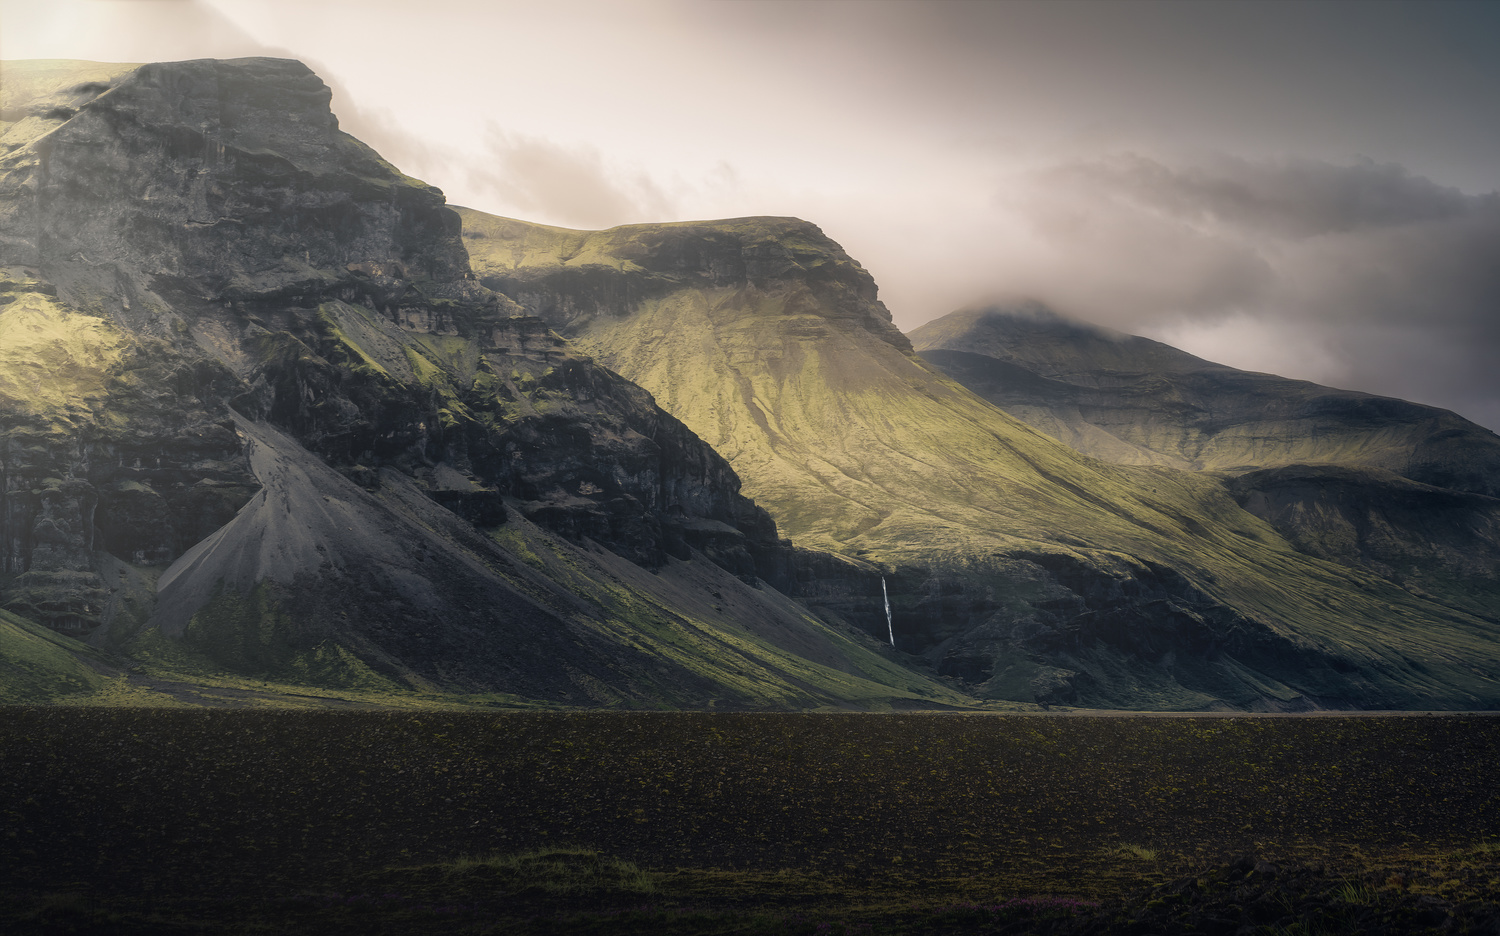 The light of Iceland by DaniGviews /Daniel